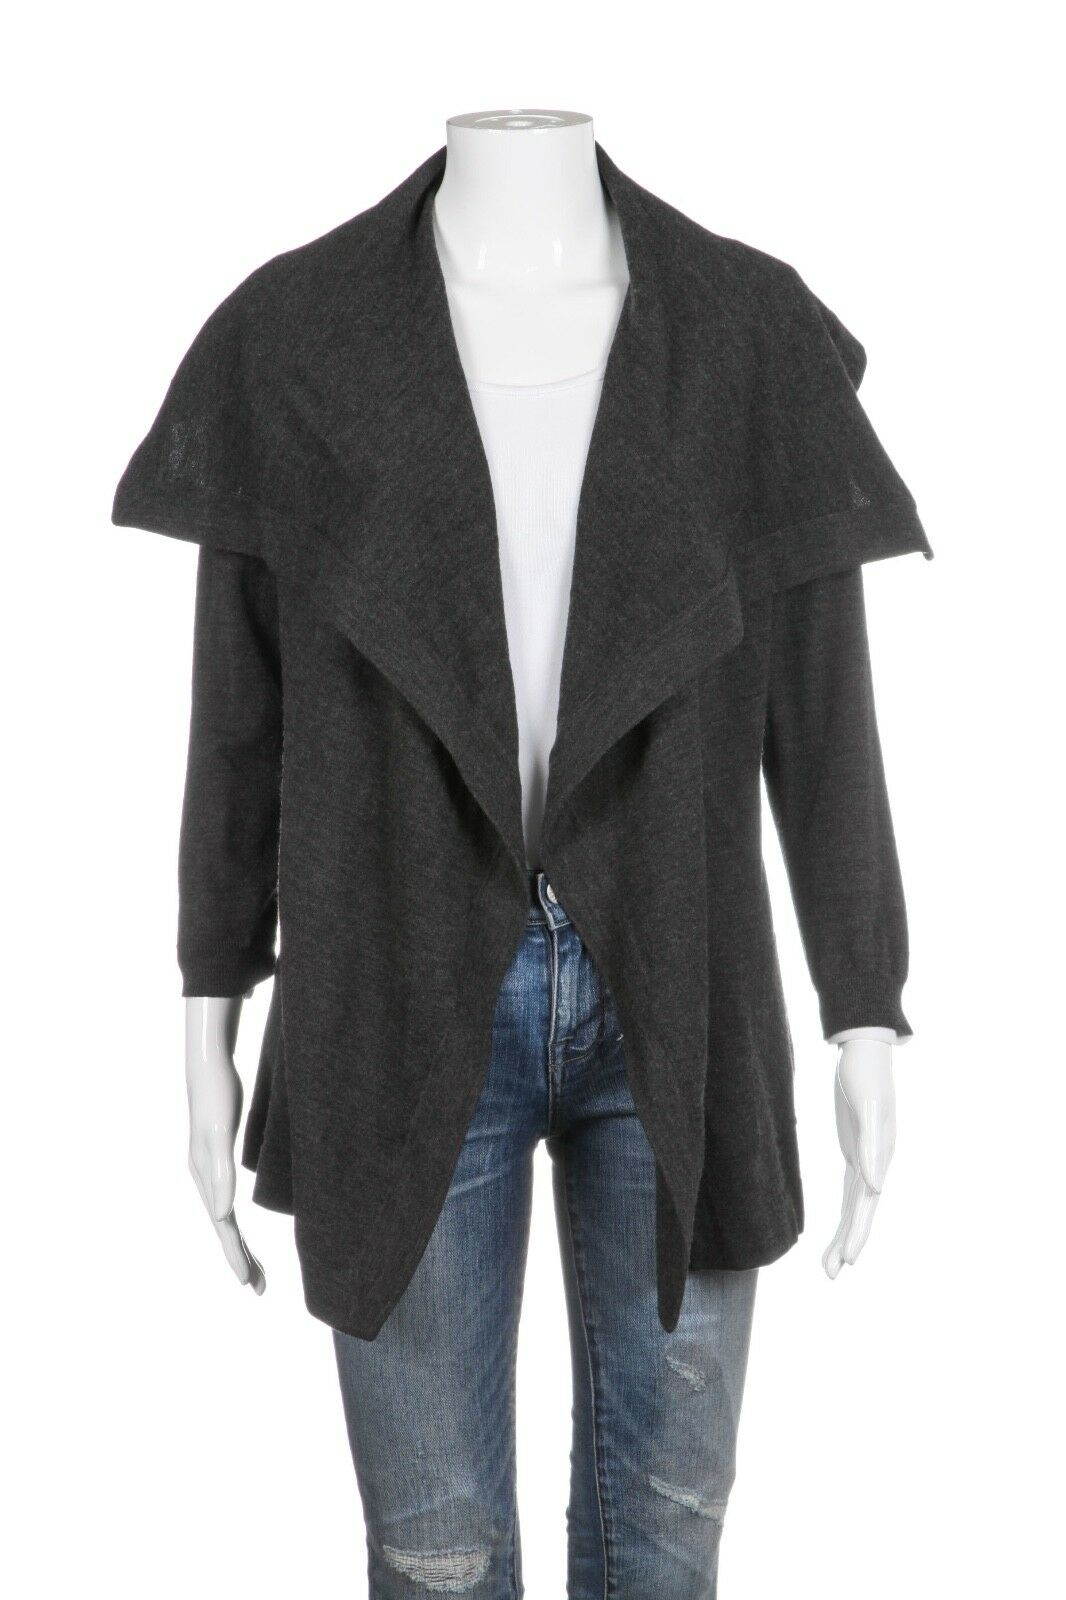 THEORY Wool Blend Cardigan Jacket Size S